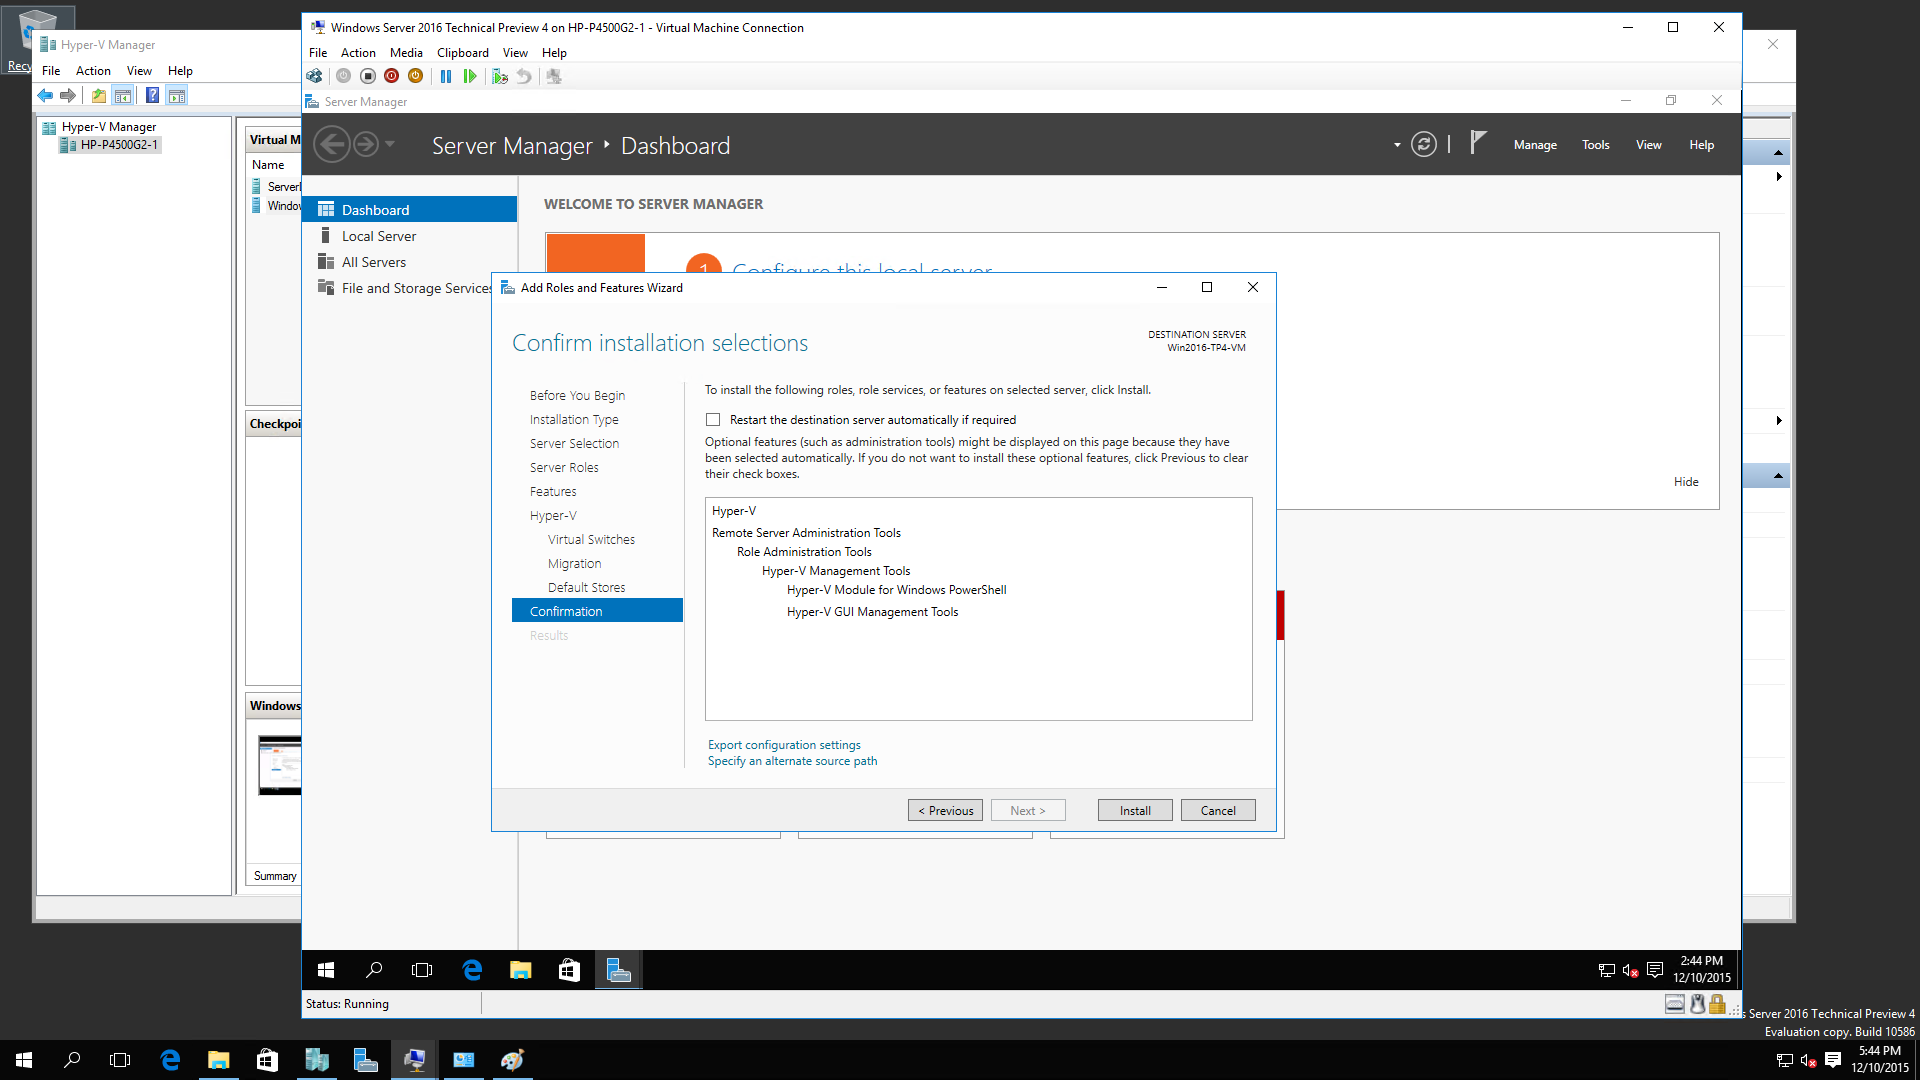 Windows 2016 R2 TP4 Nested Virtualization 10